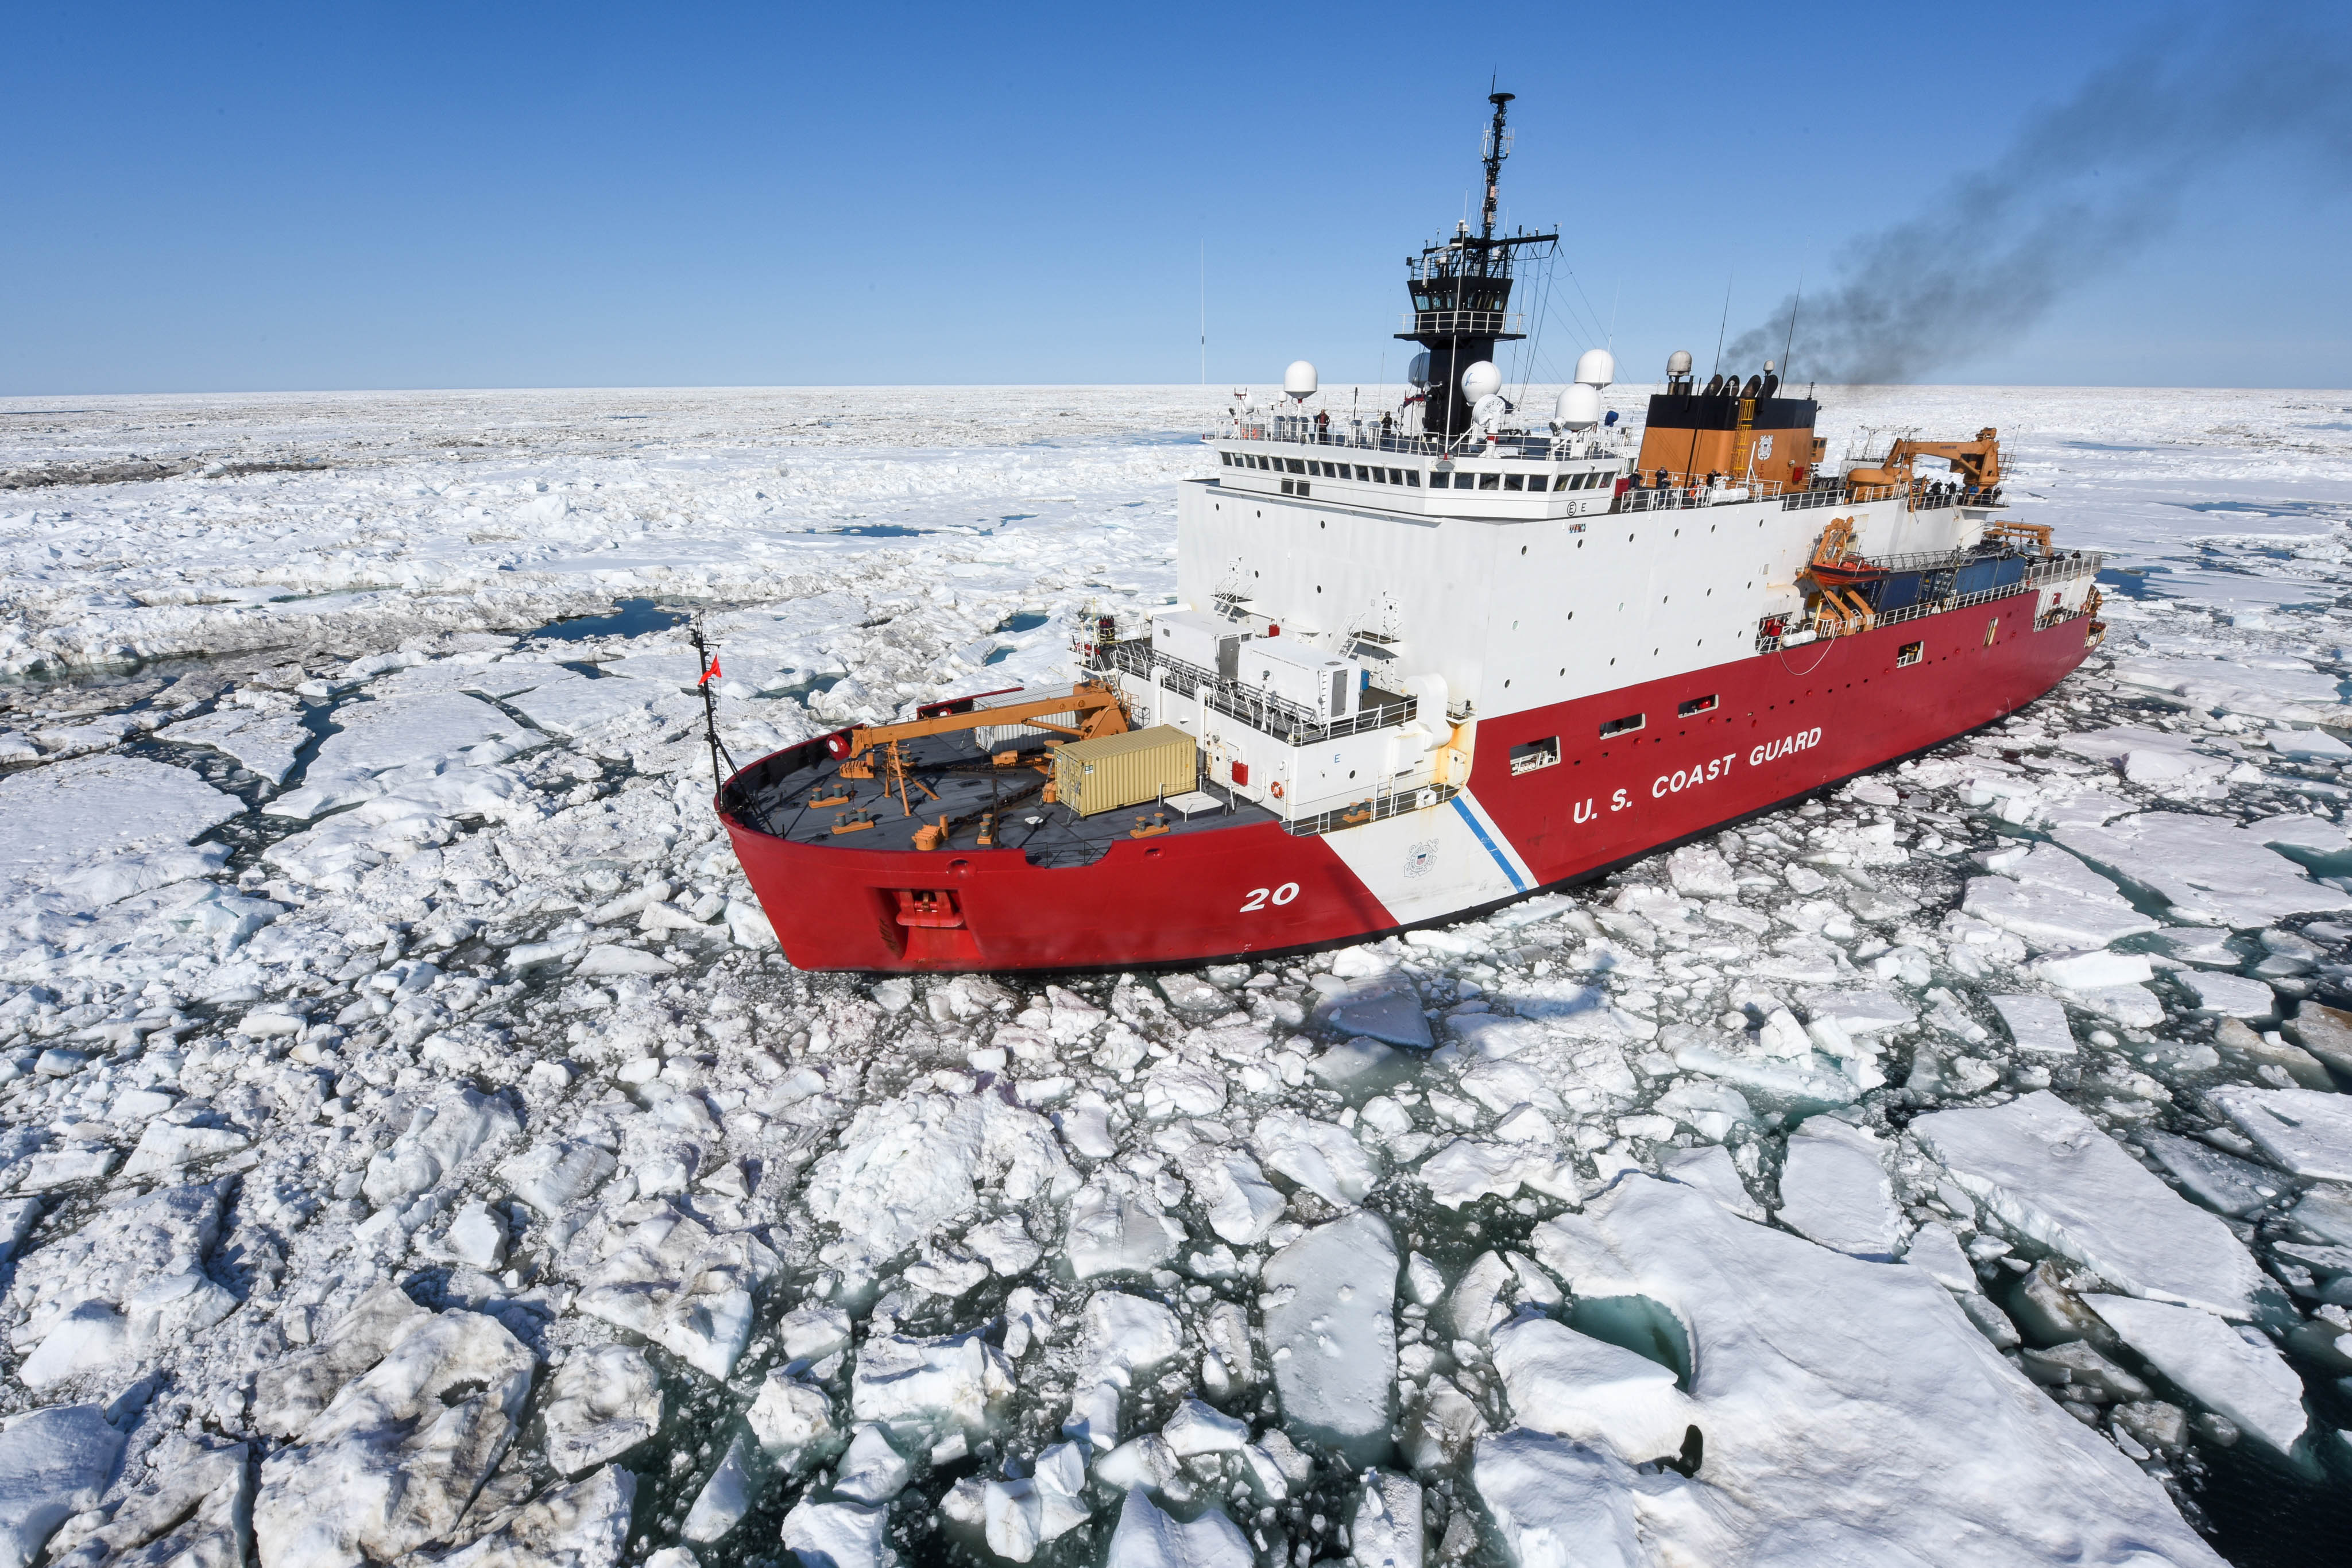 The Coast Guard Cutter Healy patrols the Arctic Ocean during a Coast Guard Research and Development Center joint civil and federal search and rescue exercise near Oliktok Point, Alaska, July 13, 2015. The Healy is a 420-foot icebreaker homeported in Seattle. (Petty Officer 2nd Class Grant DeVuyst / U.S. Coast Guard)